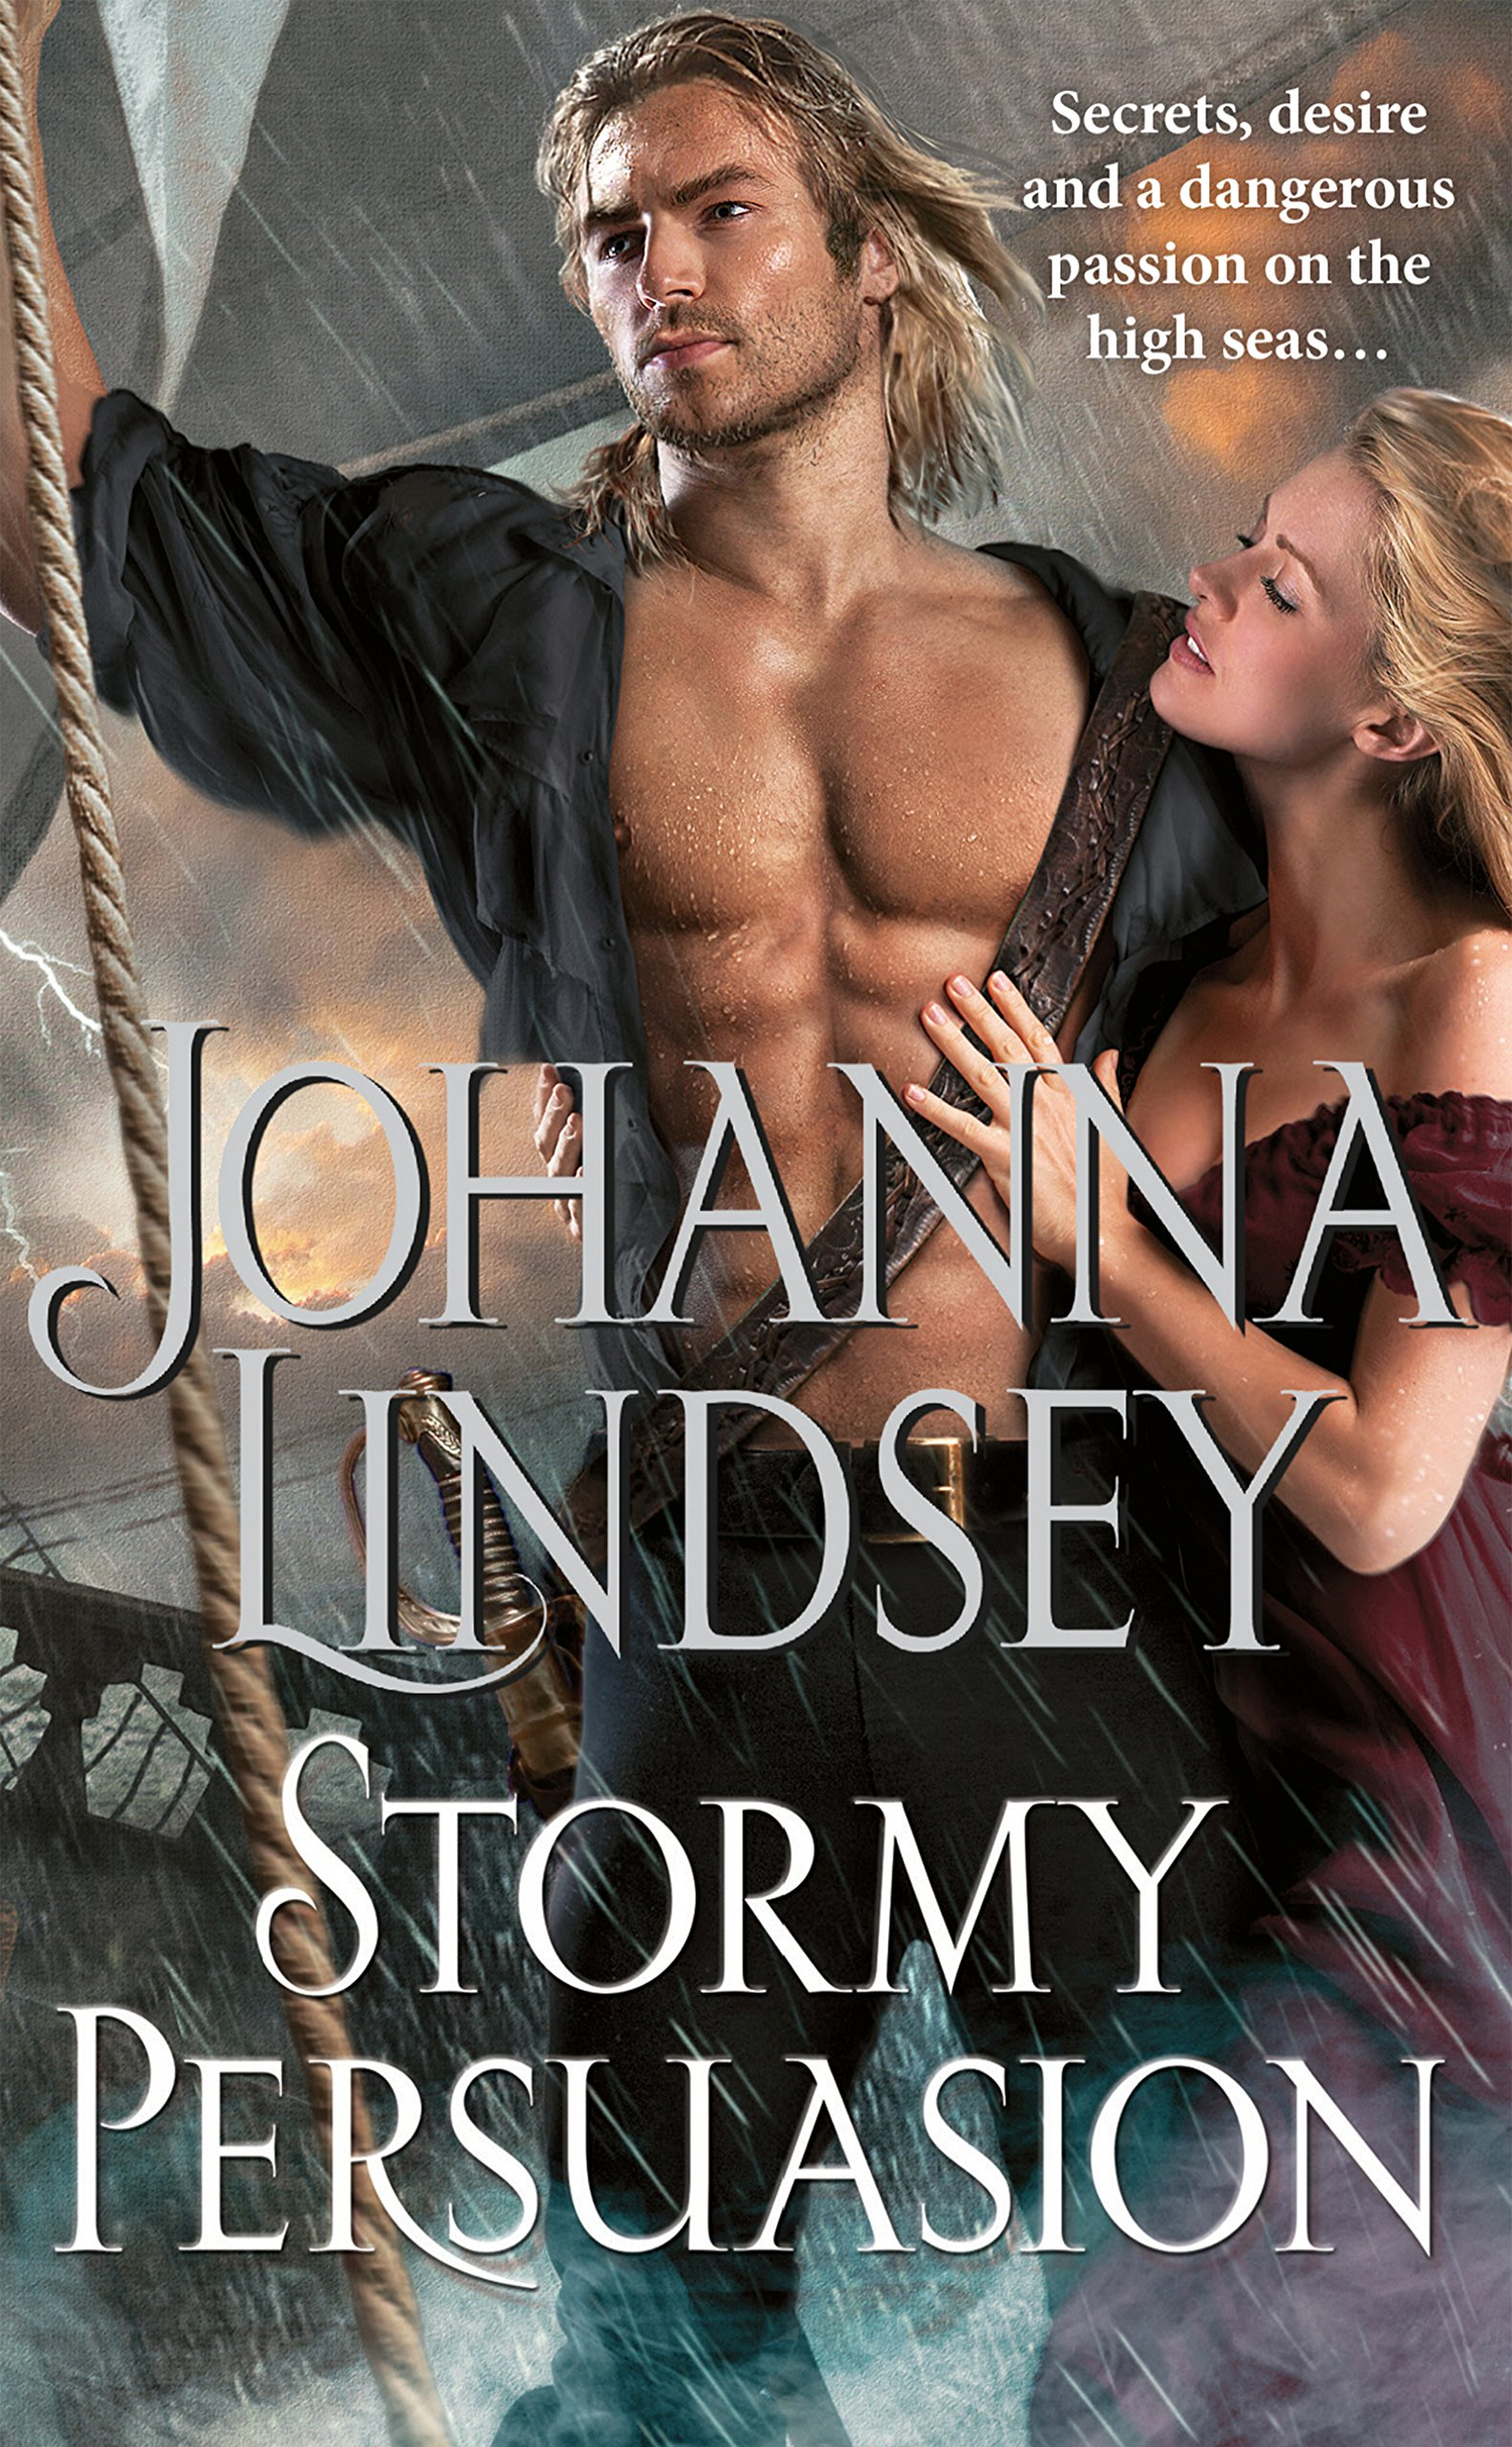 Stormy Persuasion Johanna Lindsey product image